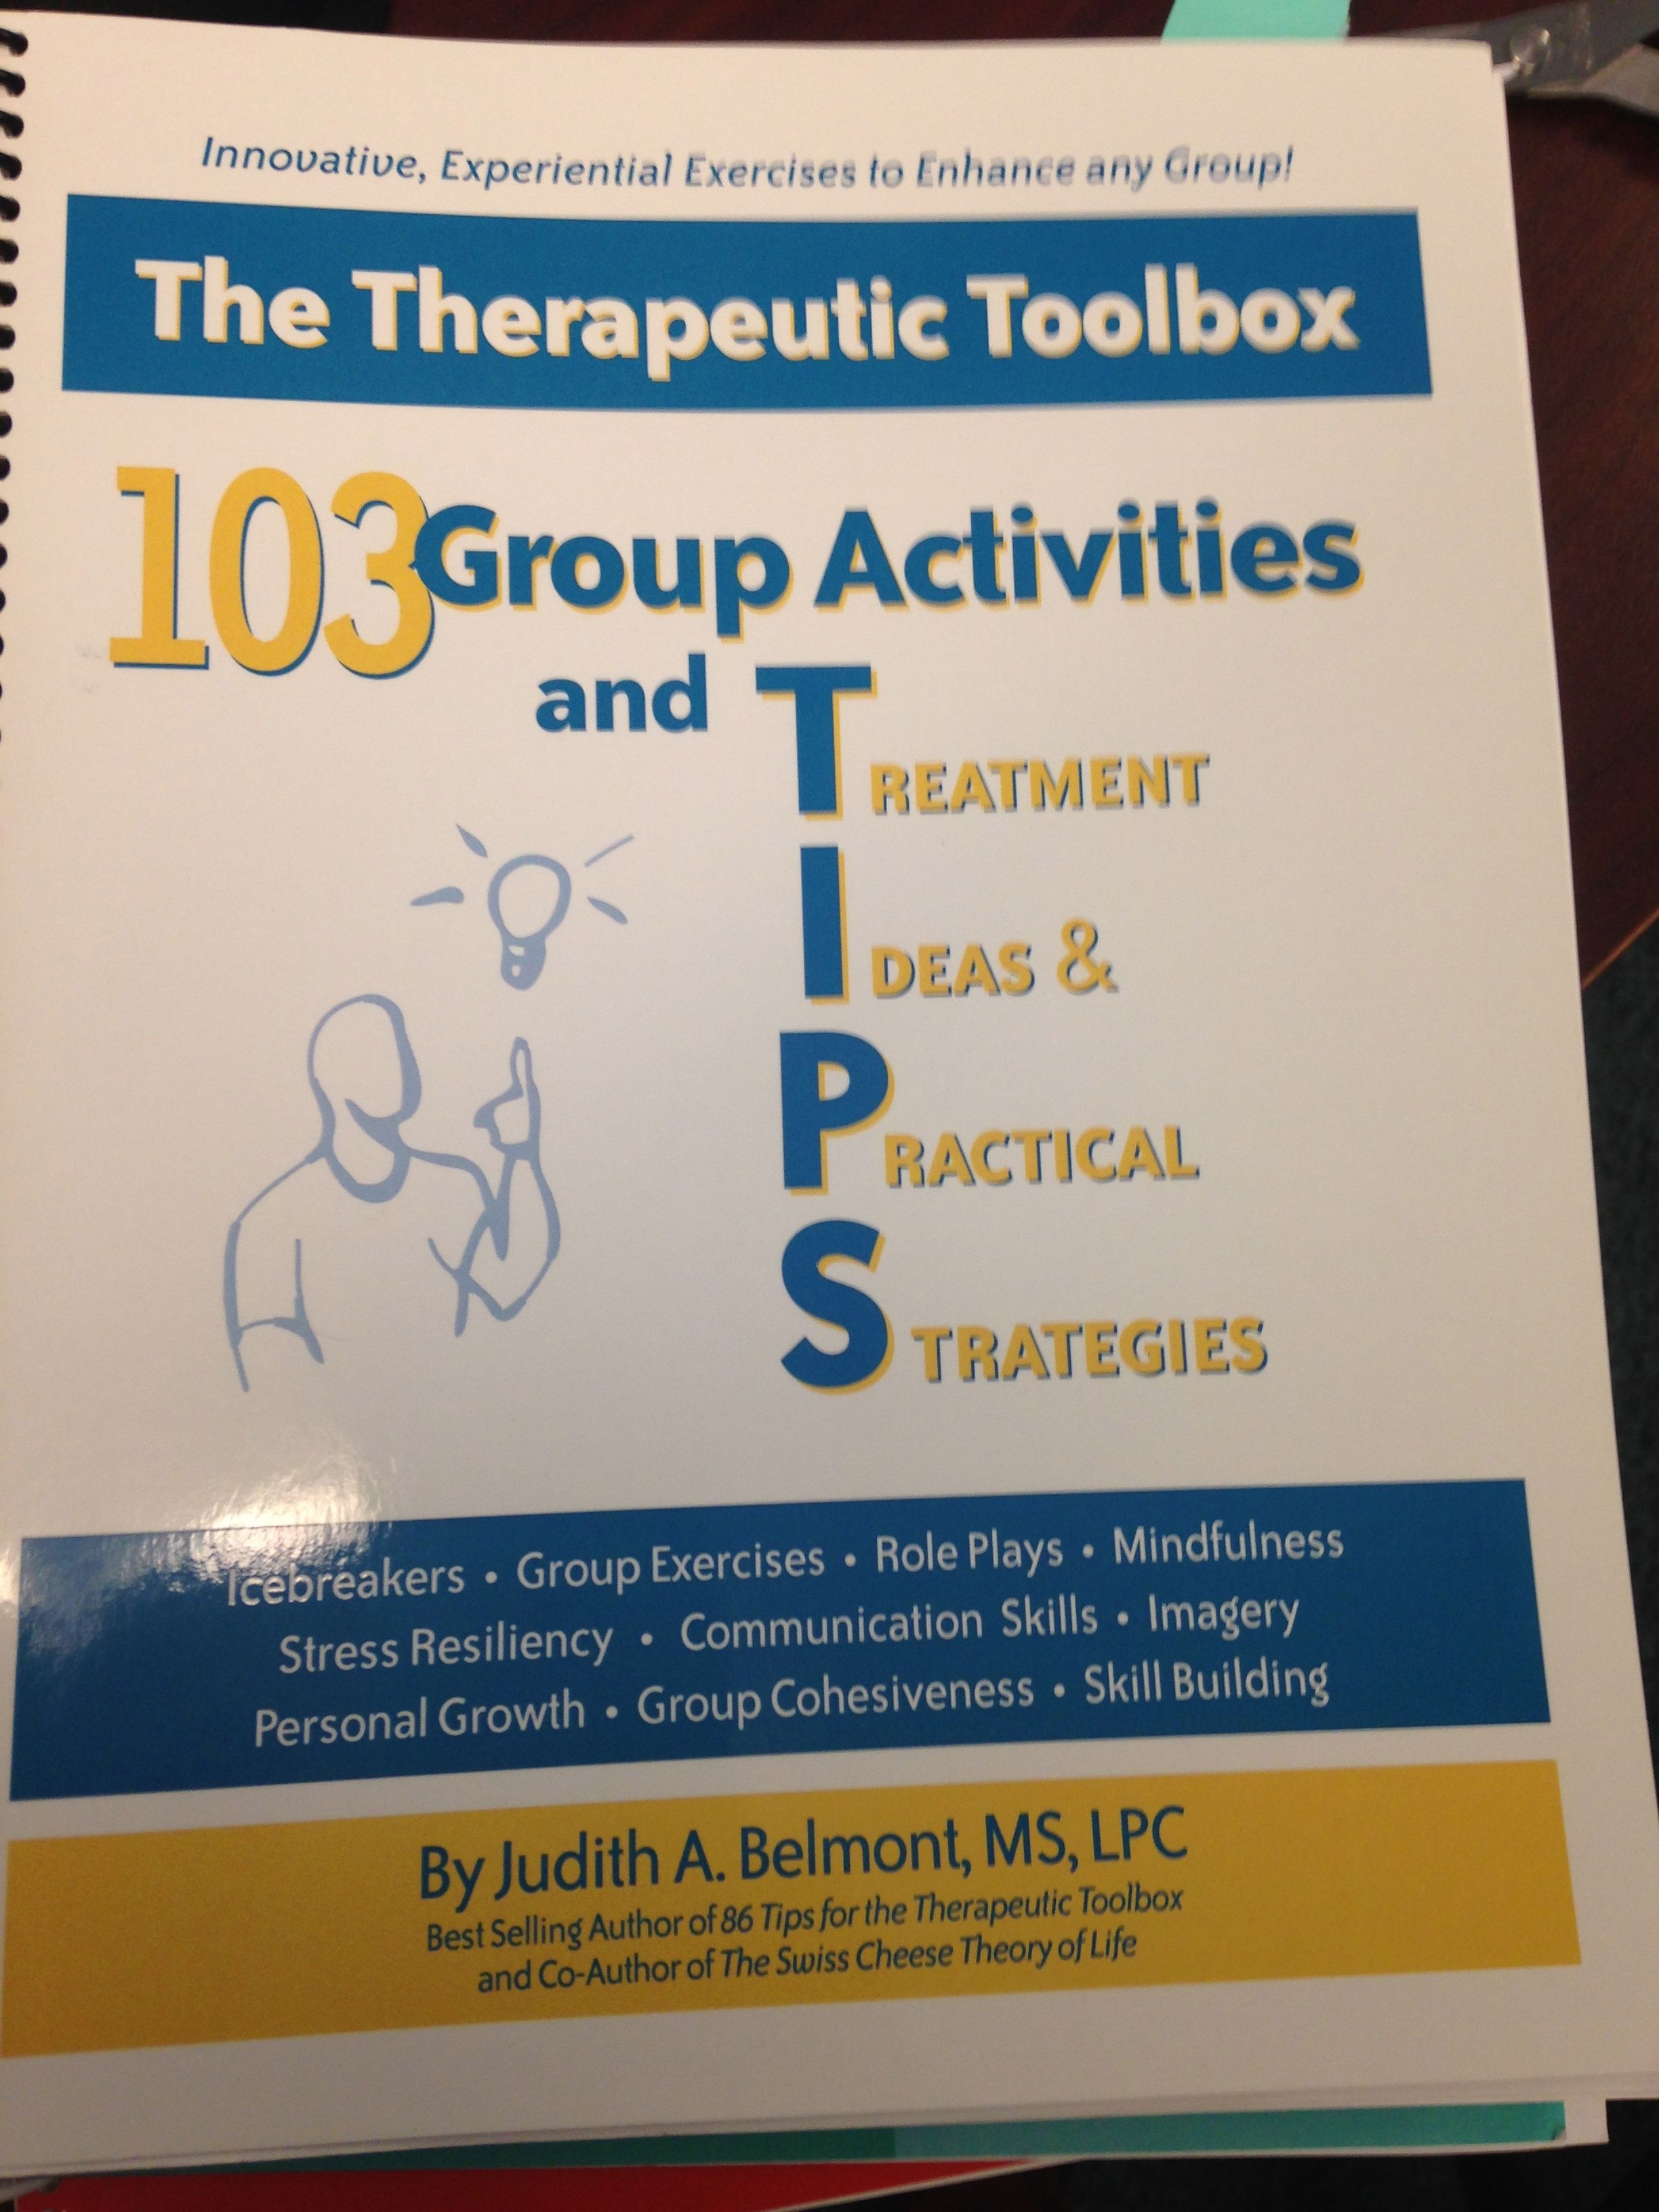 103 Group Activities and Tx ideas and practical strategies. Lots of topics  such as communication skills, Stress mgmg, mindfulness, ice breakers.